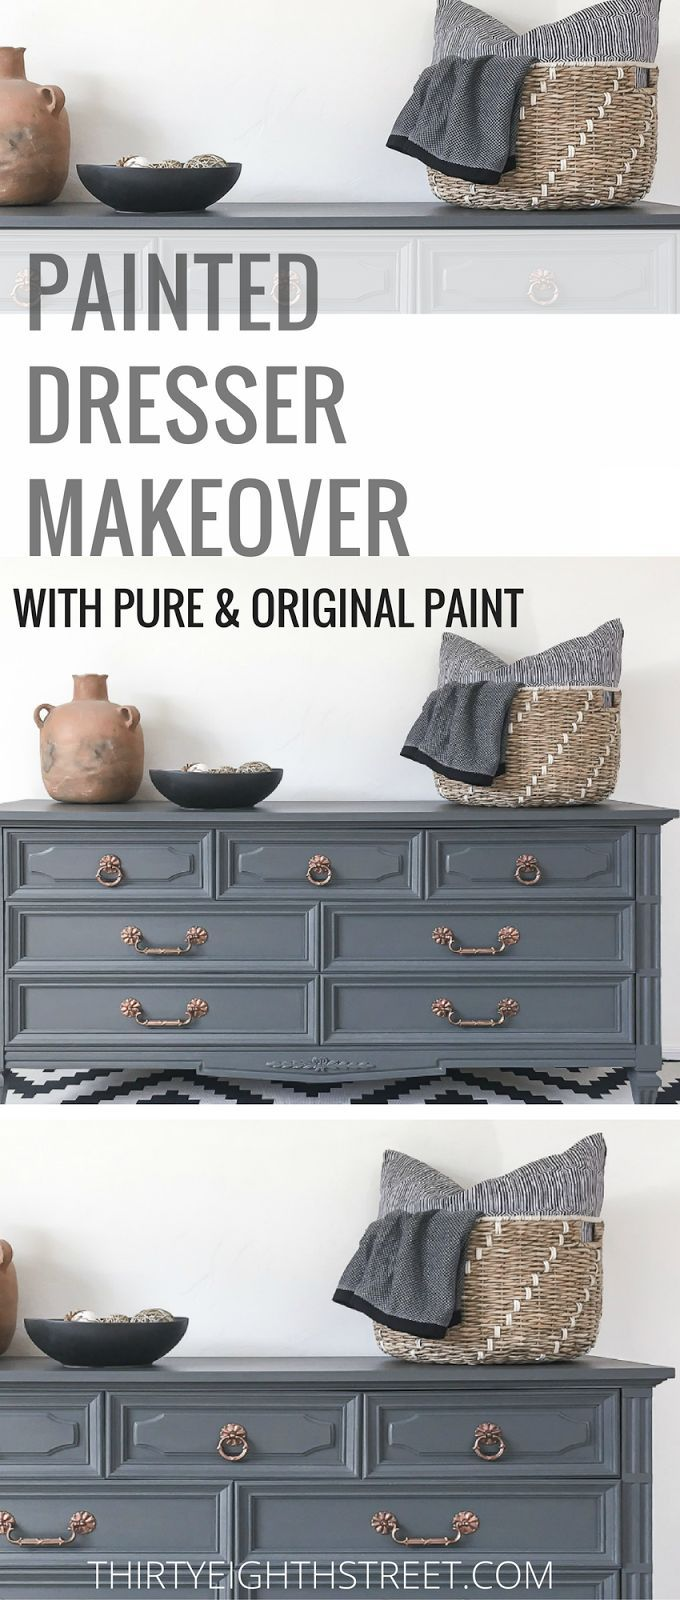 How To Paint Wood Furniture With Pure   Original Paint. Best 25  Paint wood furniture ideas on Pinterest   DIY furniture